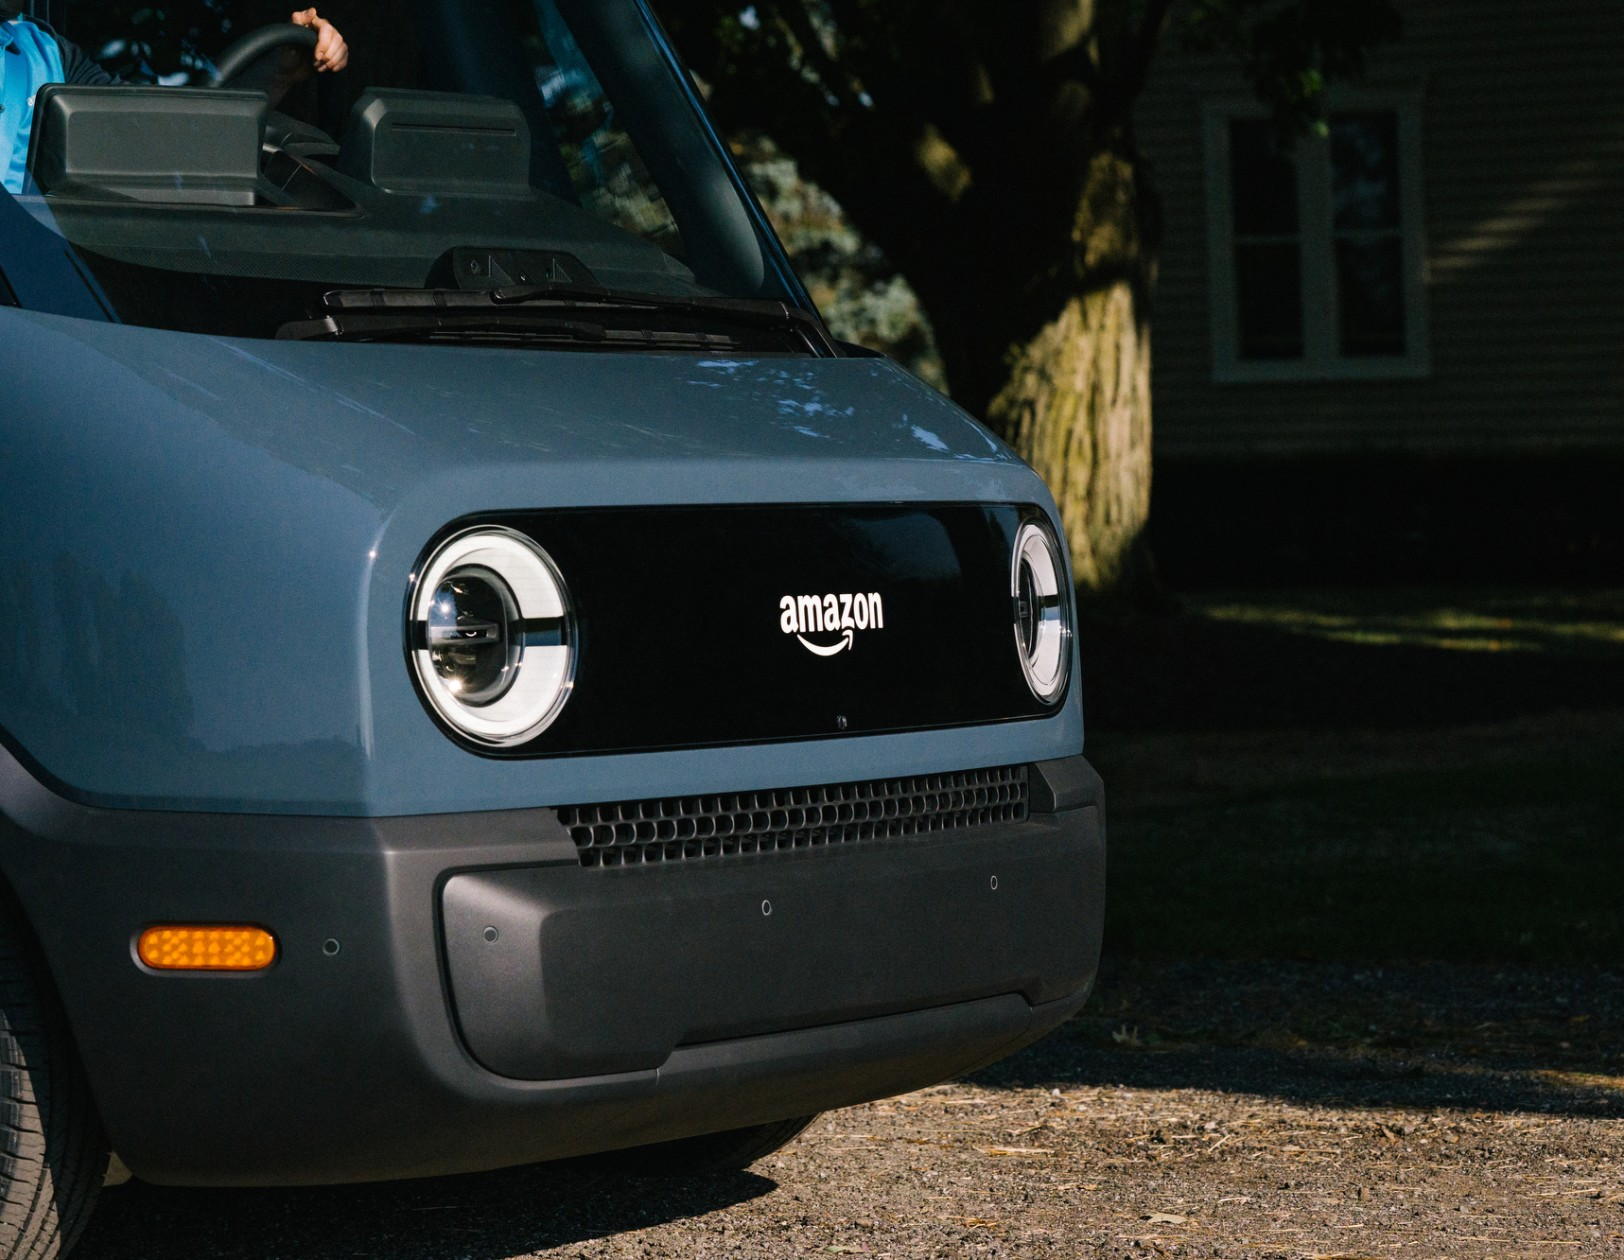 AMAZON DEBUTS ITS FIRST FULLY ELECTRIC DELIVERY VEHICLE, CREATED IN PARTNERSHIP WITH RIVIAN – TECHCRUNCH